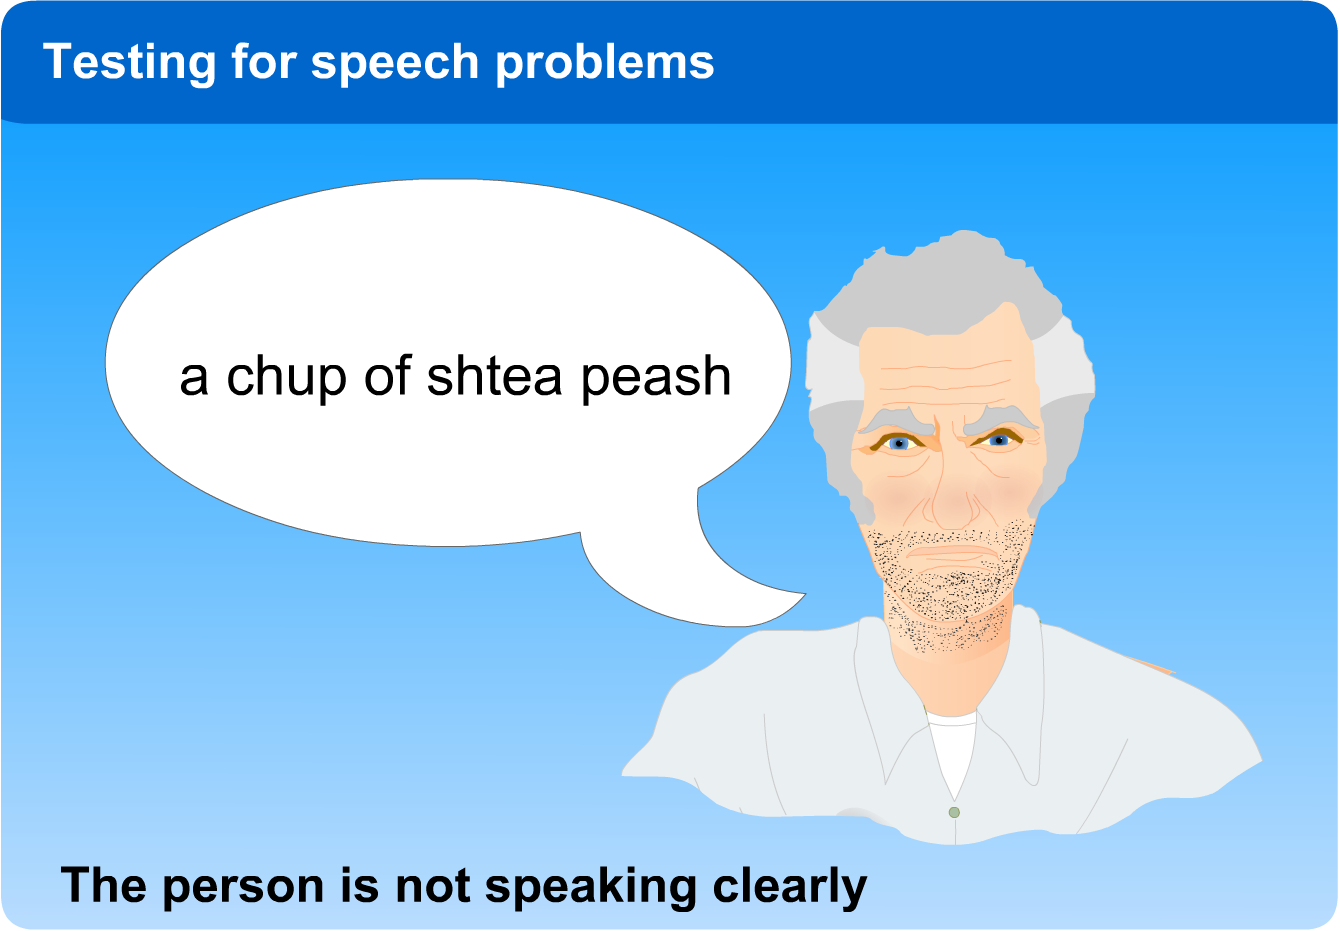 """A chup of shtea peash."" The person is not speaking clearly."